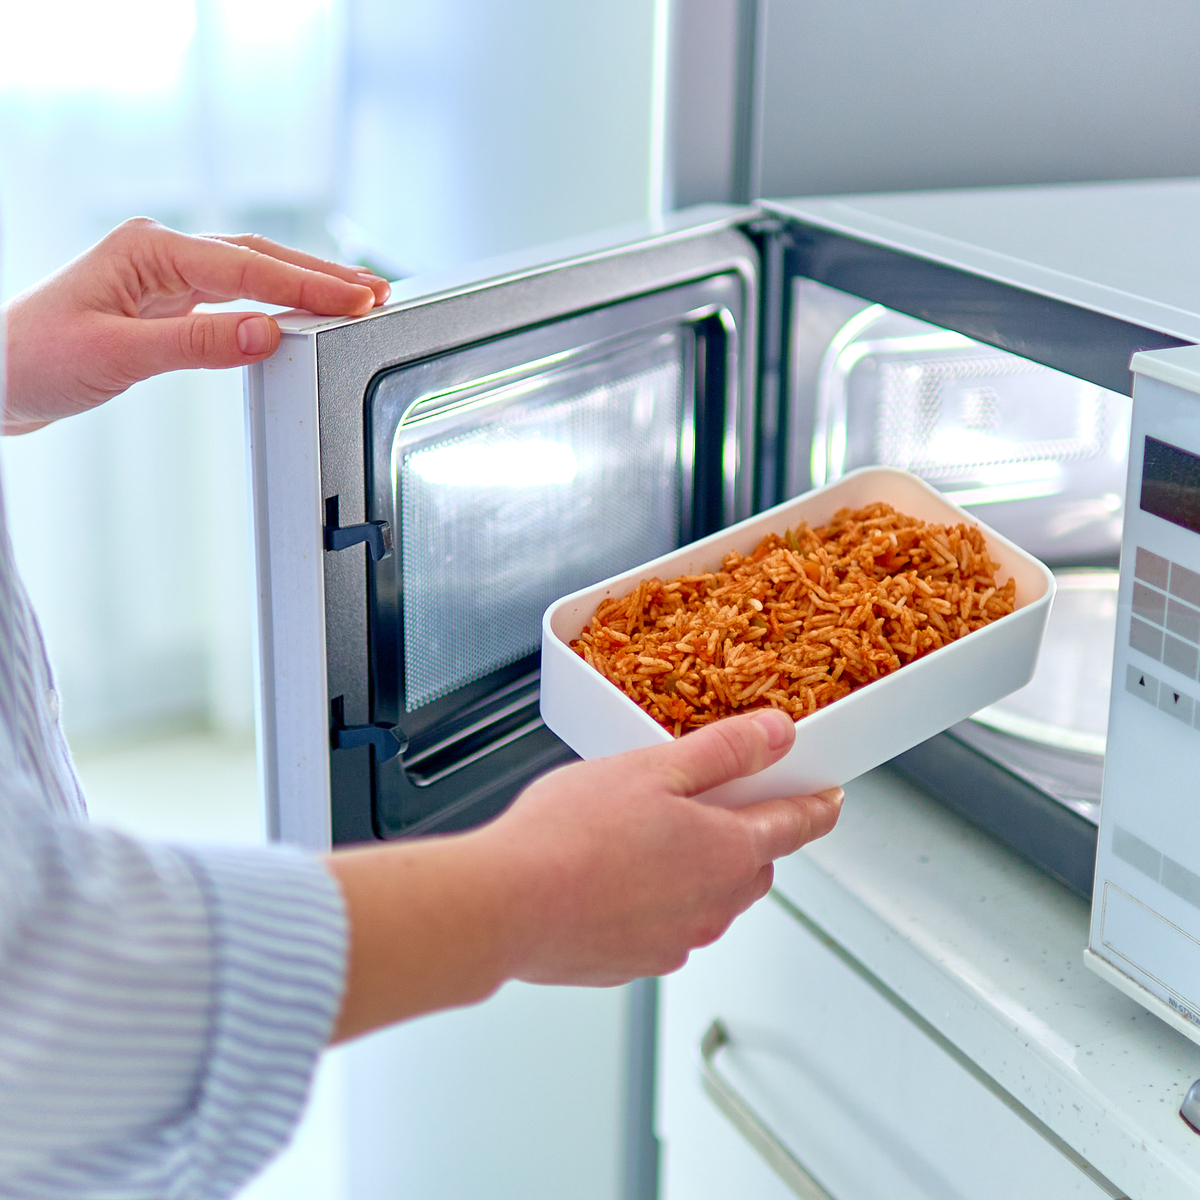 This Microwave Hack Shows How We've Been Heating Up Our Food Wrong [VIDEO]